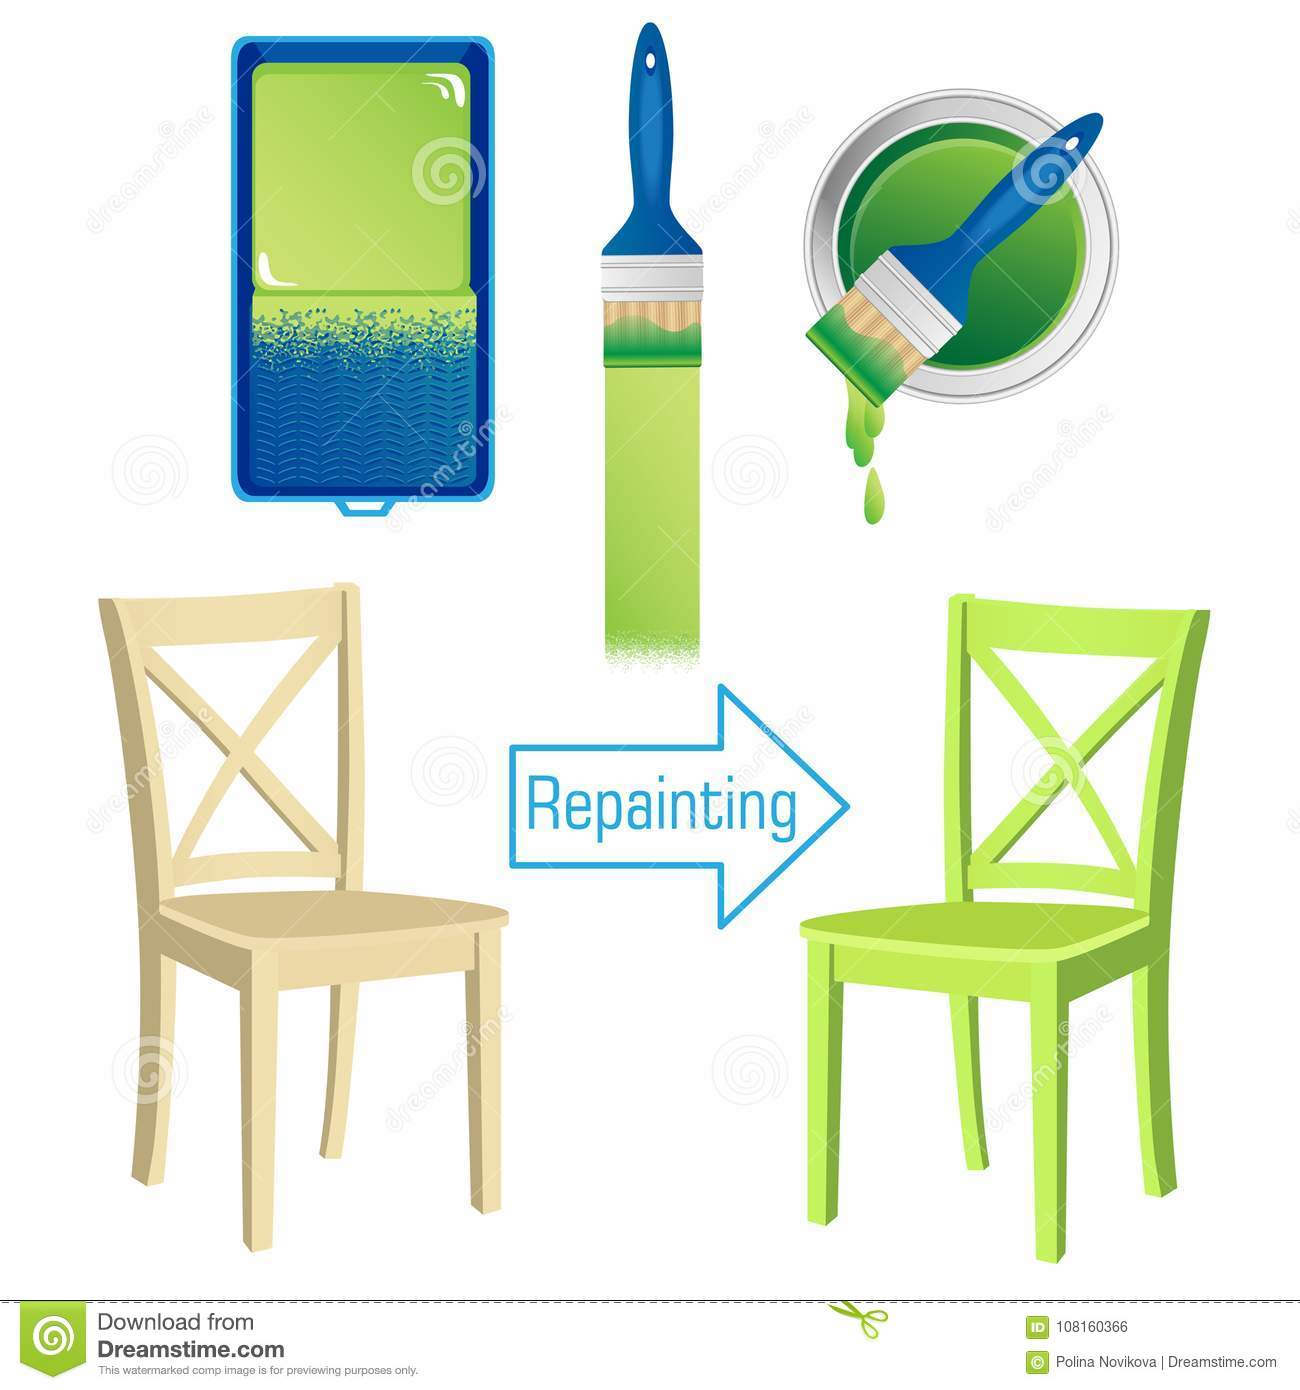 Download Furniture Repainting Tools Roller Brush Tin Of Paint And Painted Wooden Chair Stock  sc 1 st  Dreamstime.com & Furniture Repainting Tools Roller Brush Tin Of Paint And Painted ...